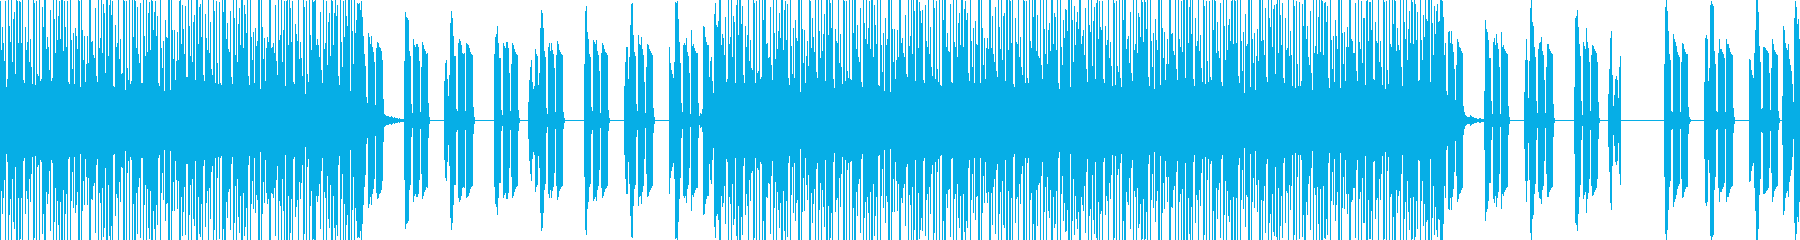 Cool, fashionable, near future electro L's reproduced waveform